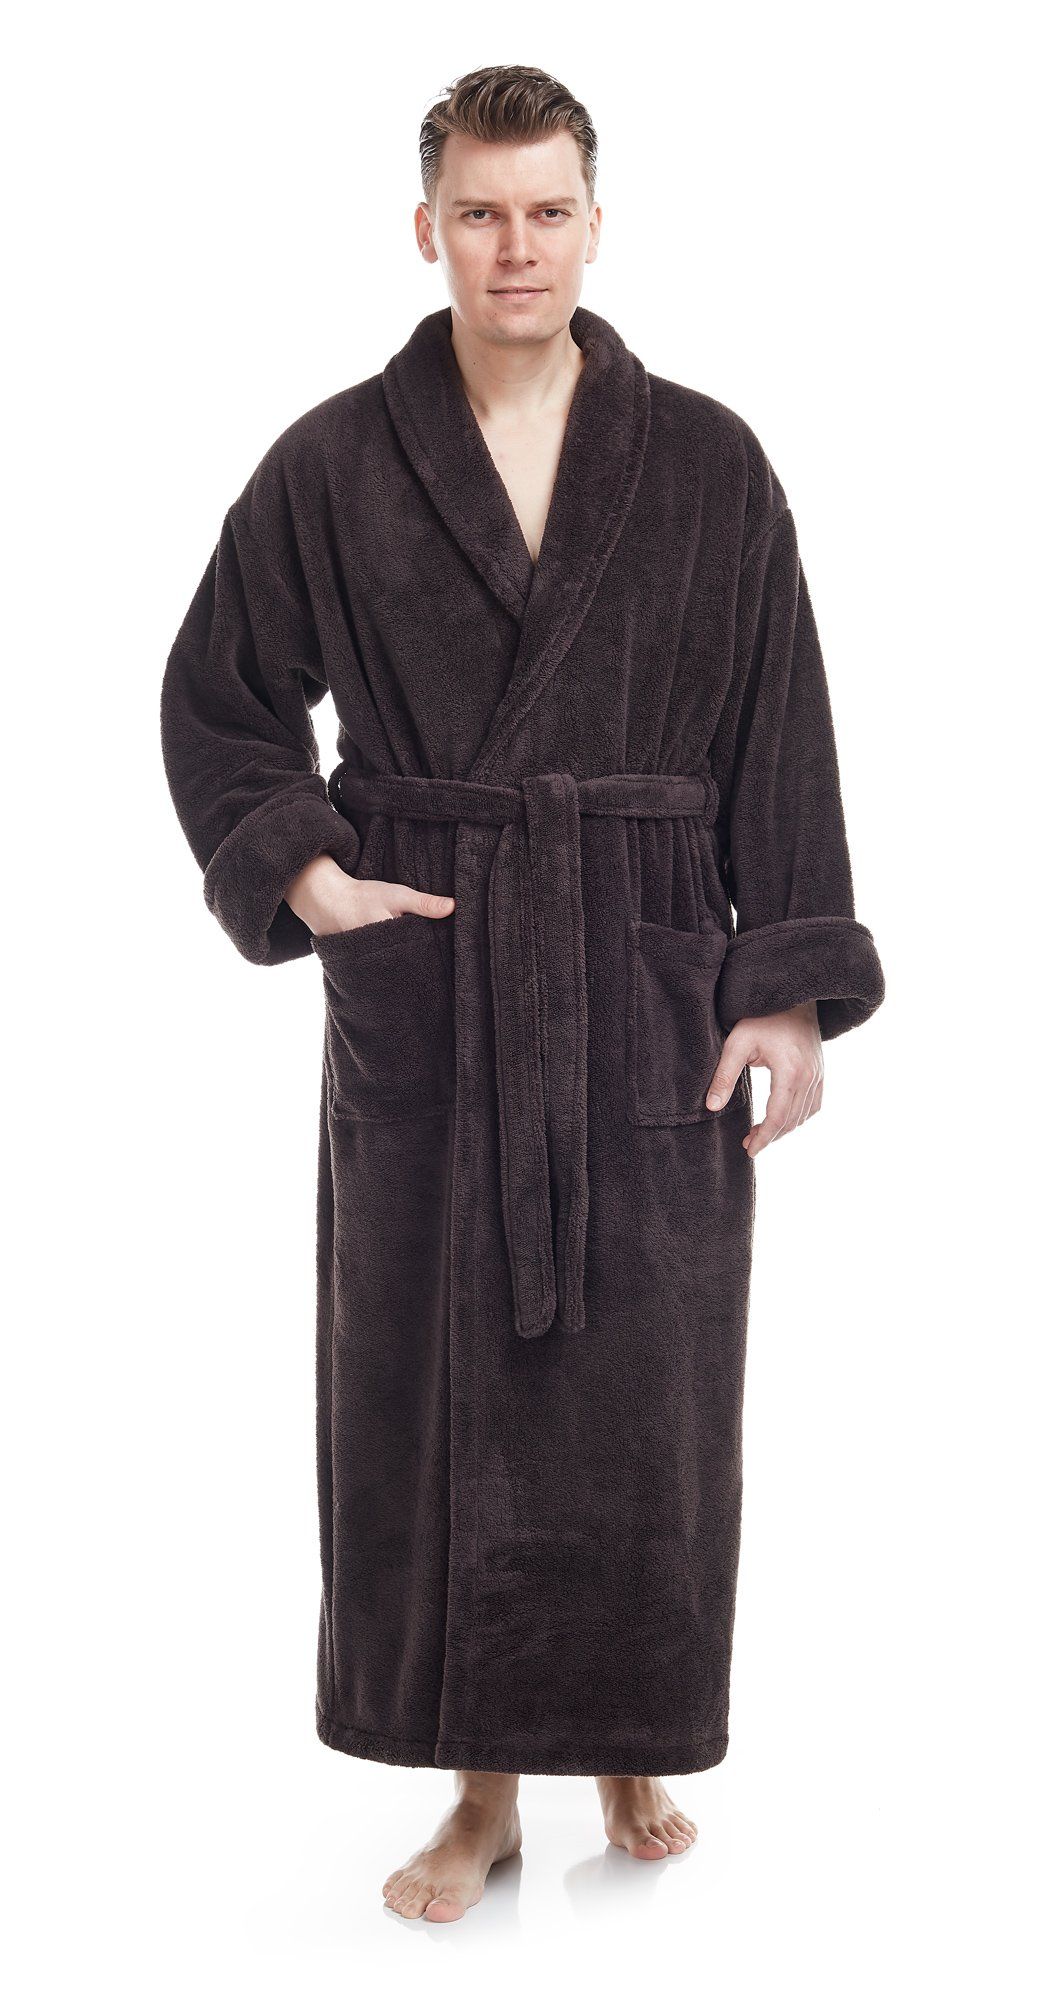 Arus Men's Shawl Collar Full Ankle Length Fleece Robe, Turkish Bathrobe, Charcoal, SM